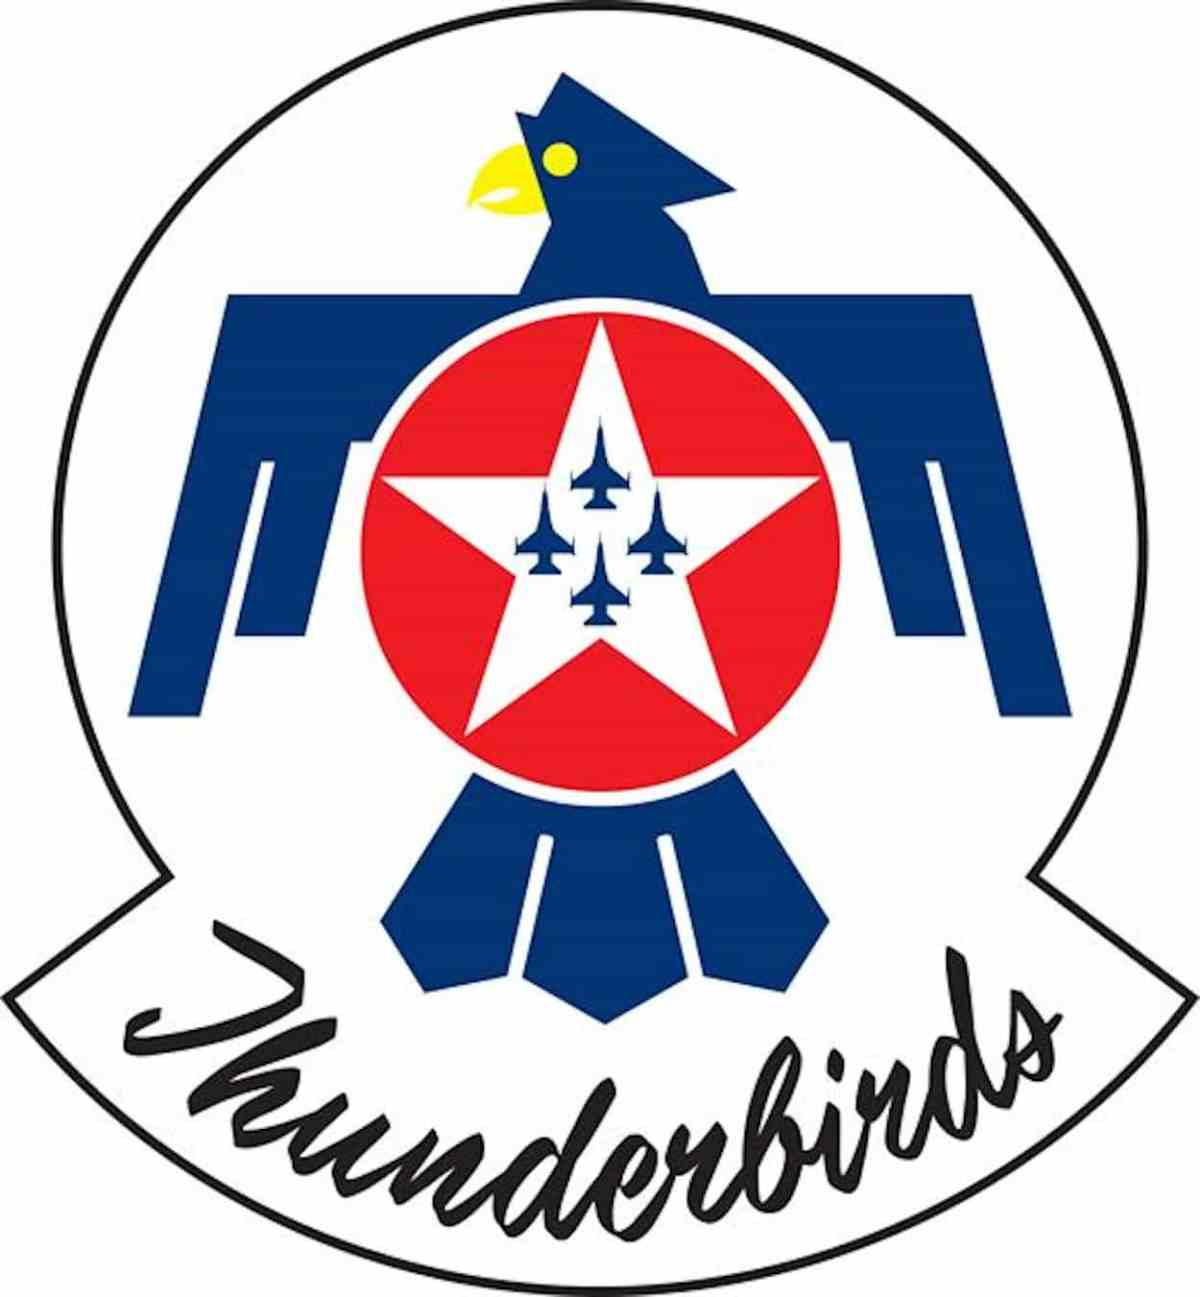 The USAF Thunderbirds demonstration team logo.  The script reminds me a little of that found on the Speedmaster.  (Credit: United States Air Force)